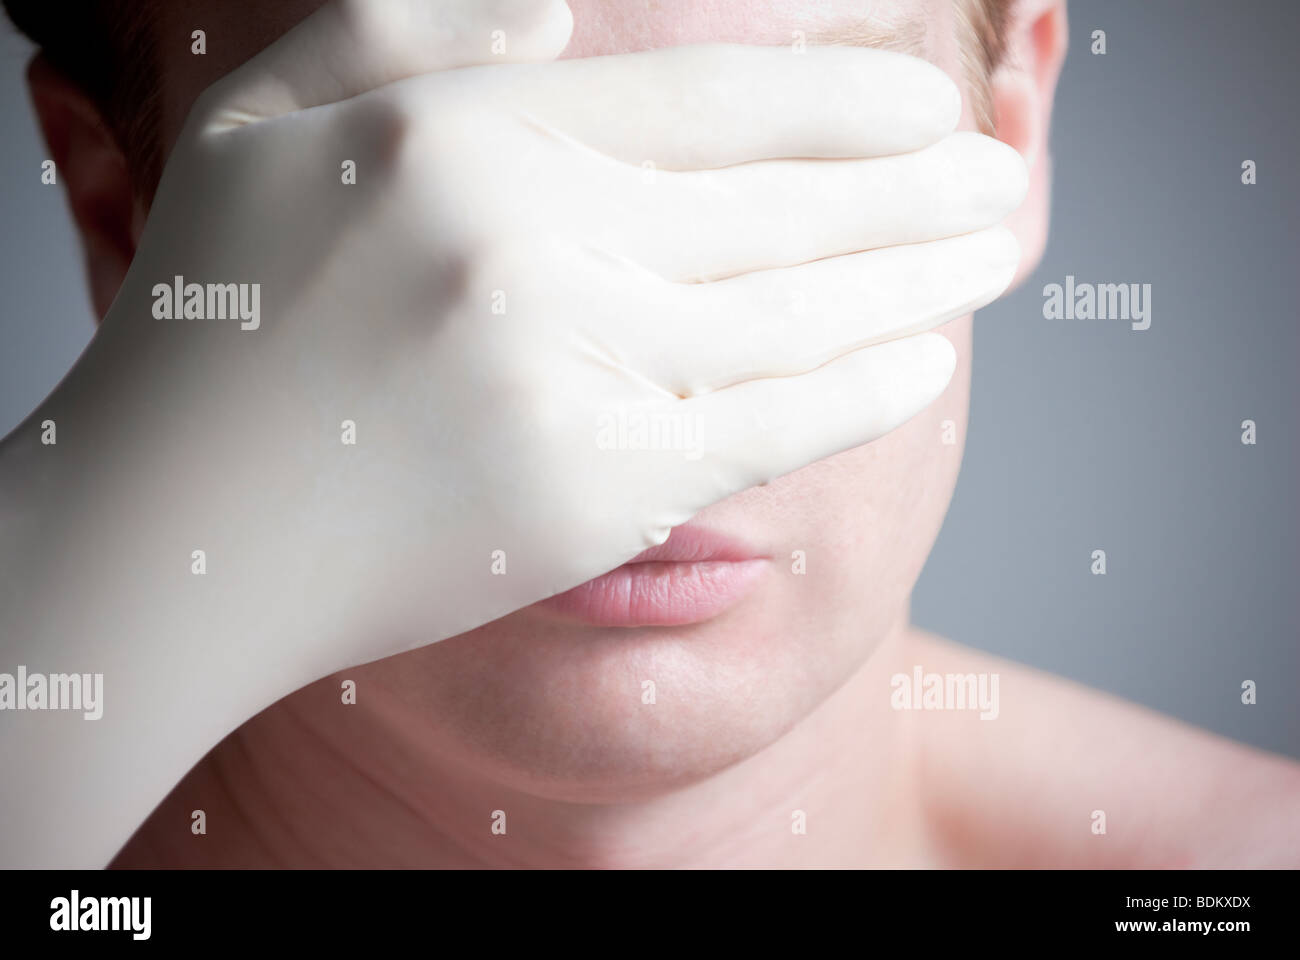 Man covering his eyes while wearing a white medical glove - Stock Image